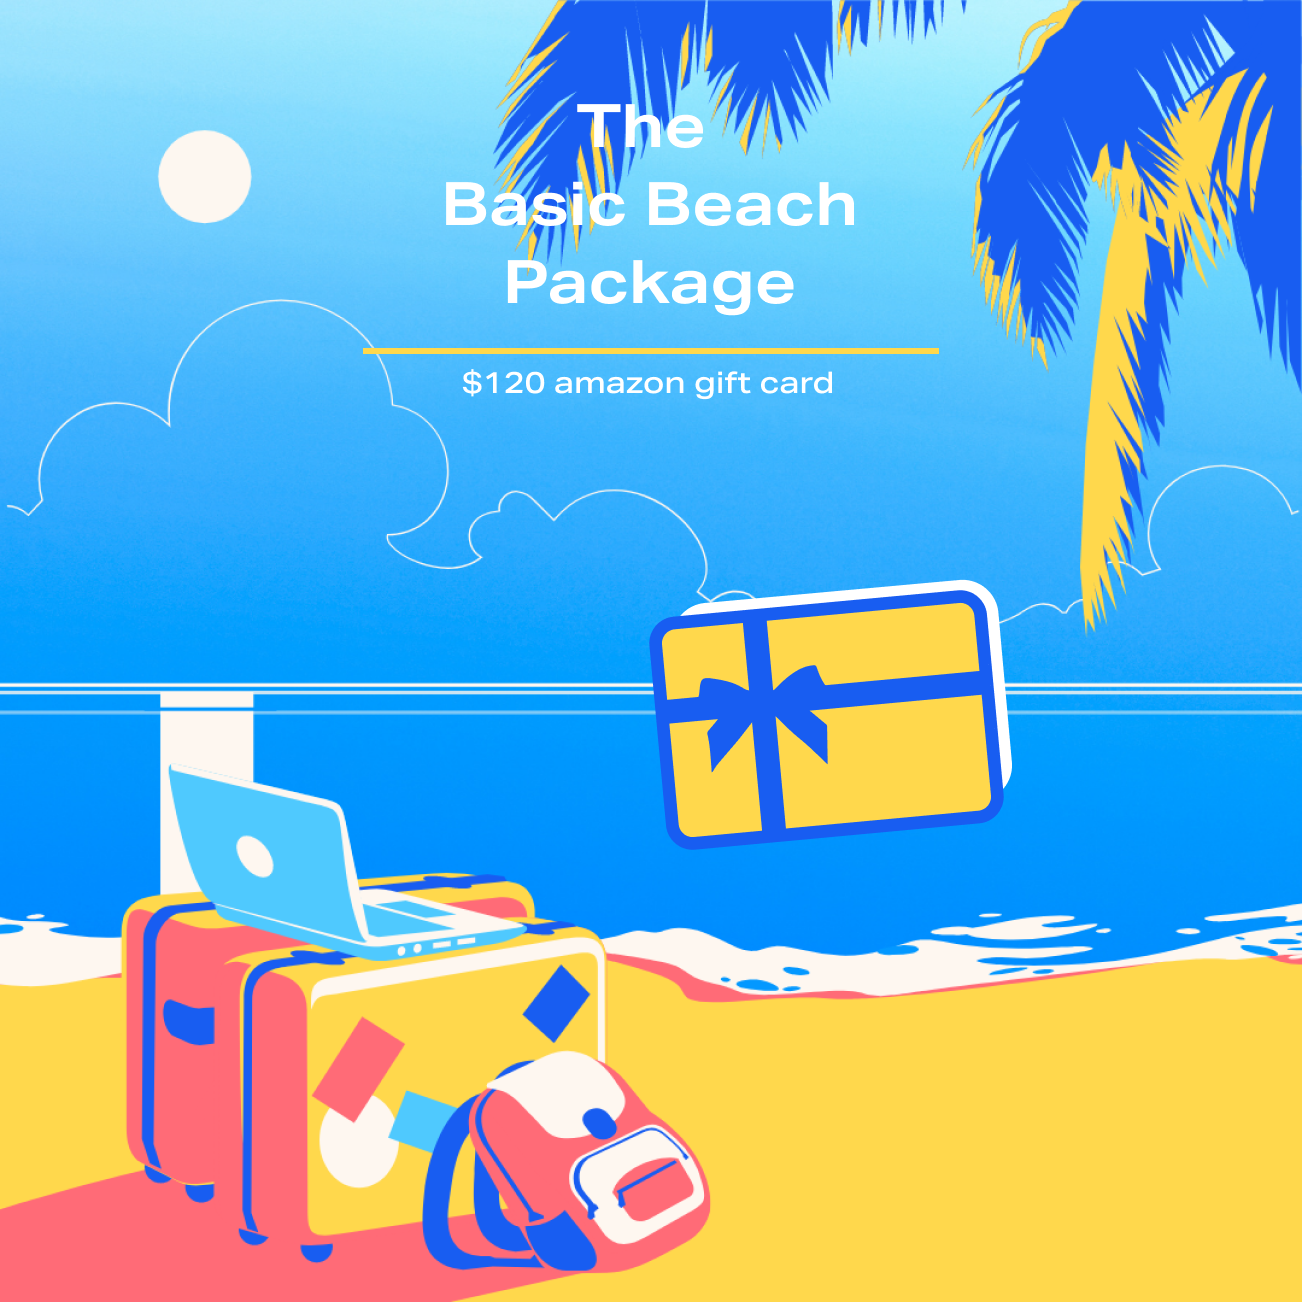 The Basic Beach Package - $120 Amazon giftcard